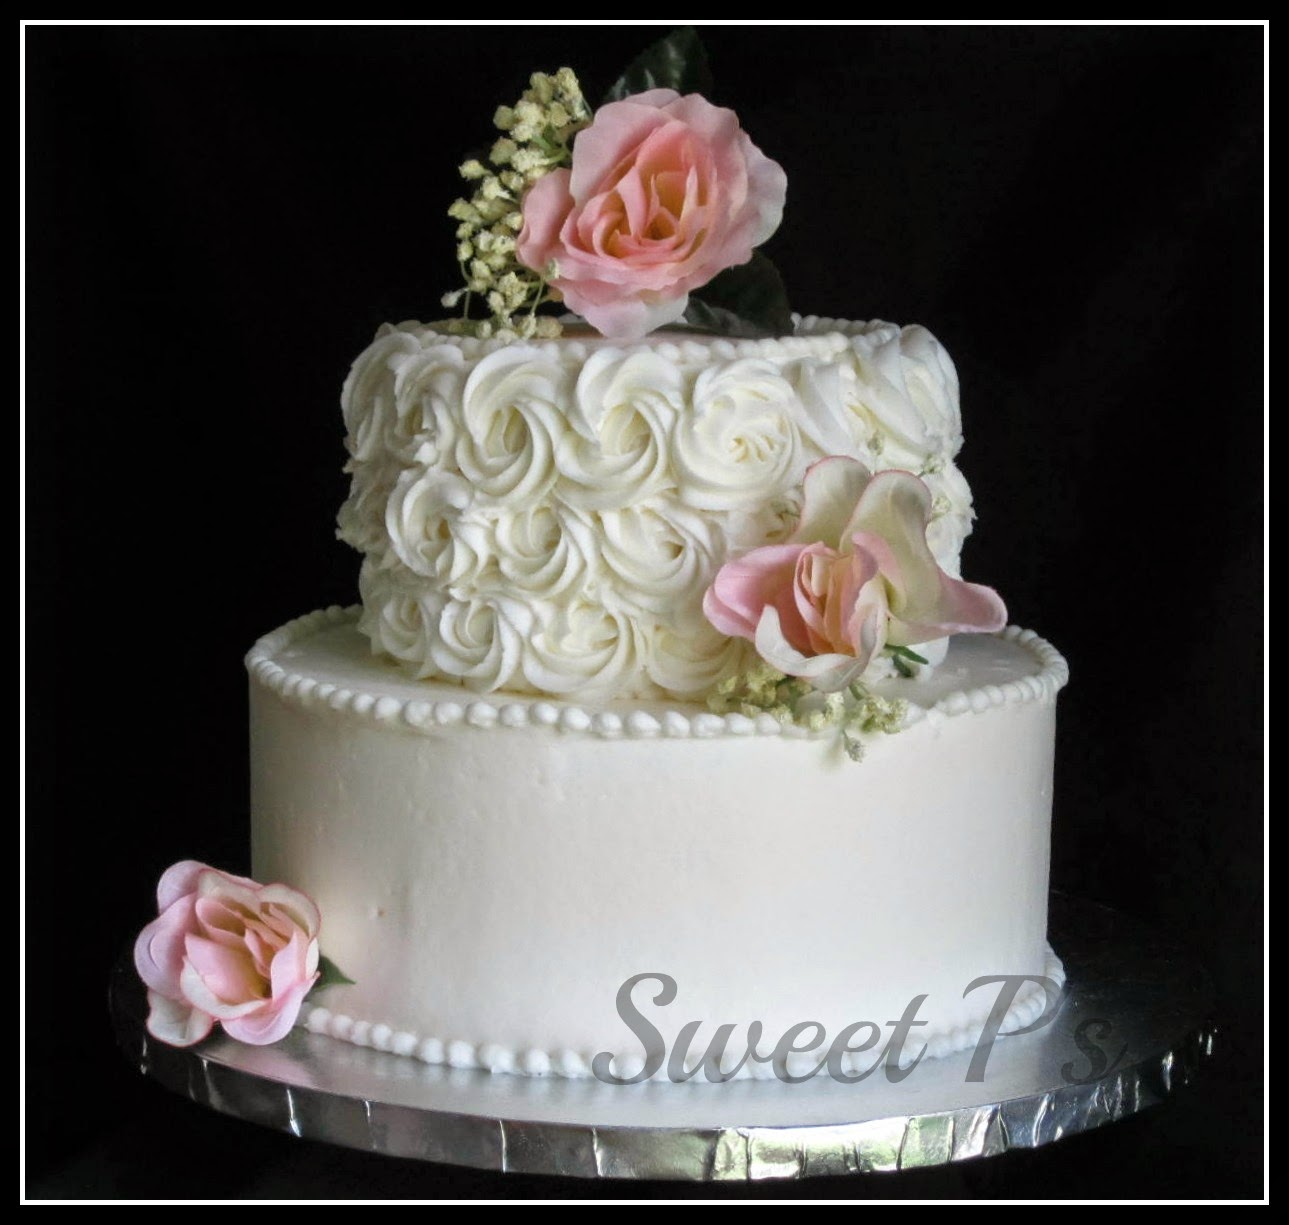 budget friendly wedding cakes sweet p 39 s cake decorating baking blog. Black Bedroom Furniture Sets. Home Design Ideas